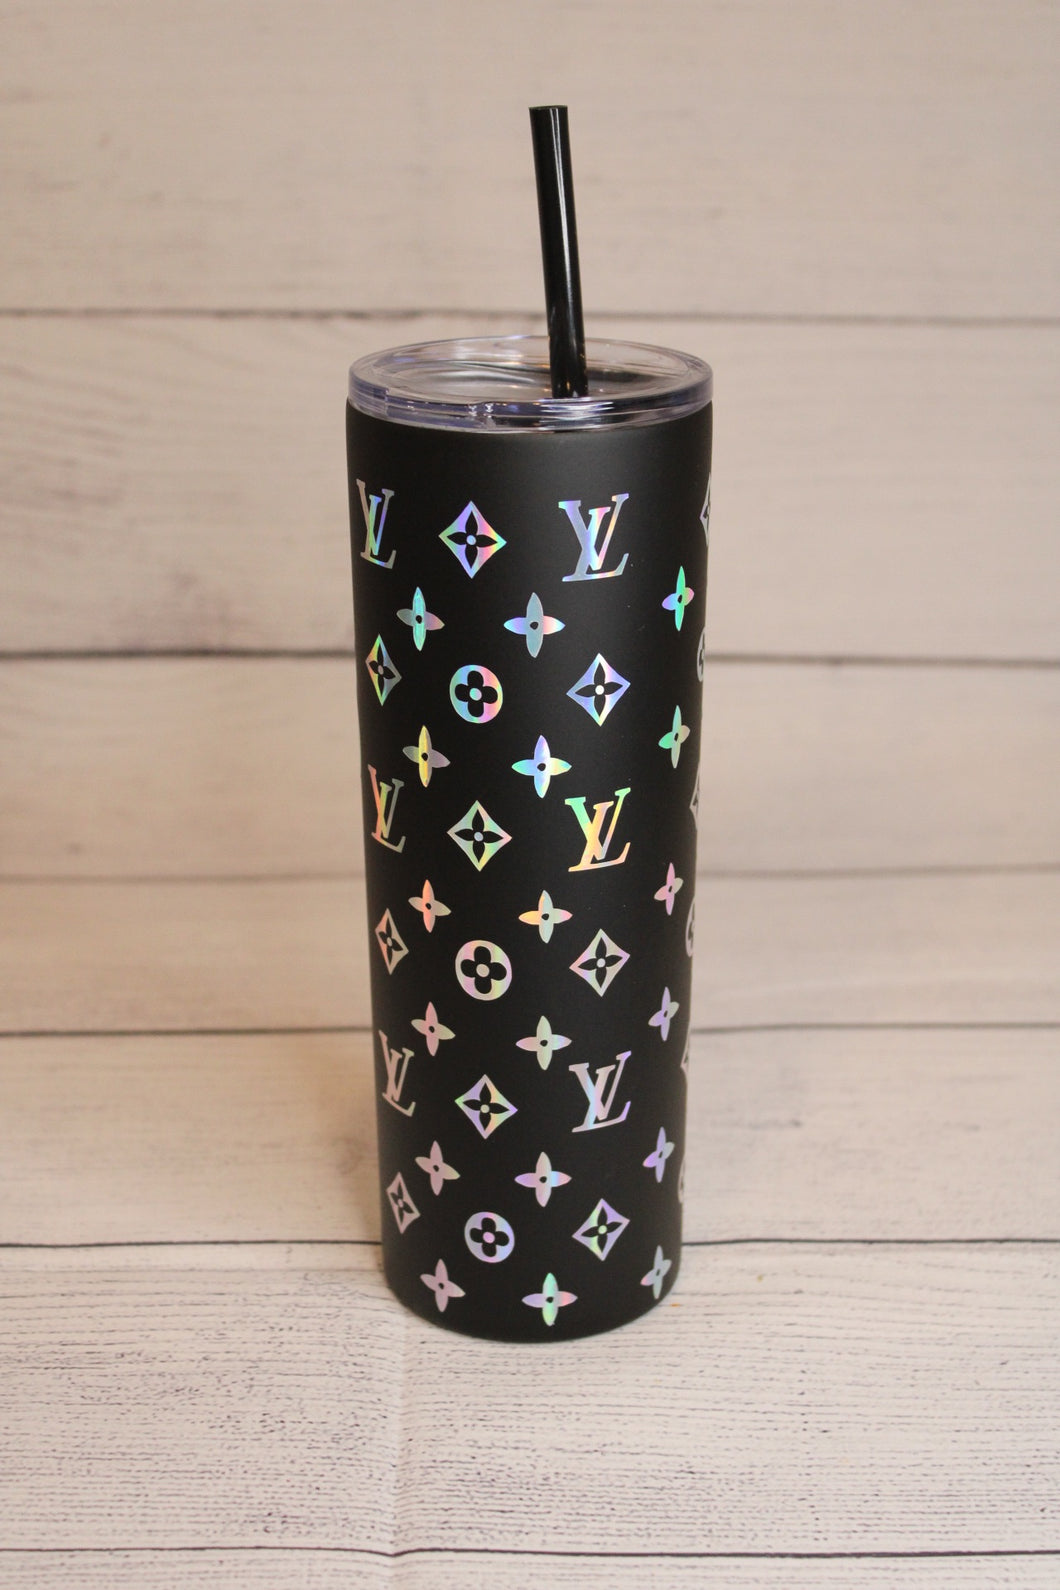 Louis Vuitton Tumbler